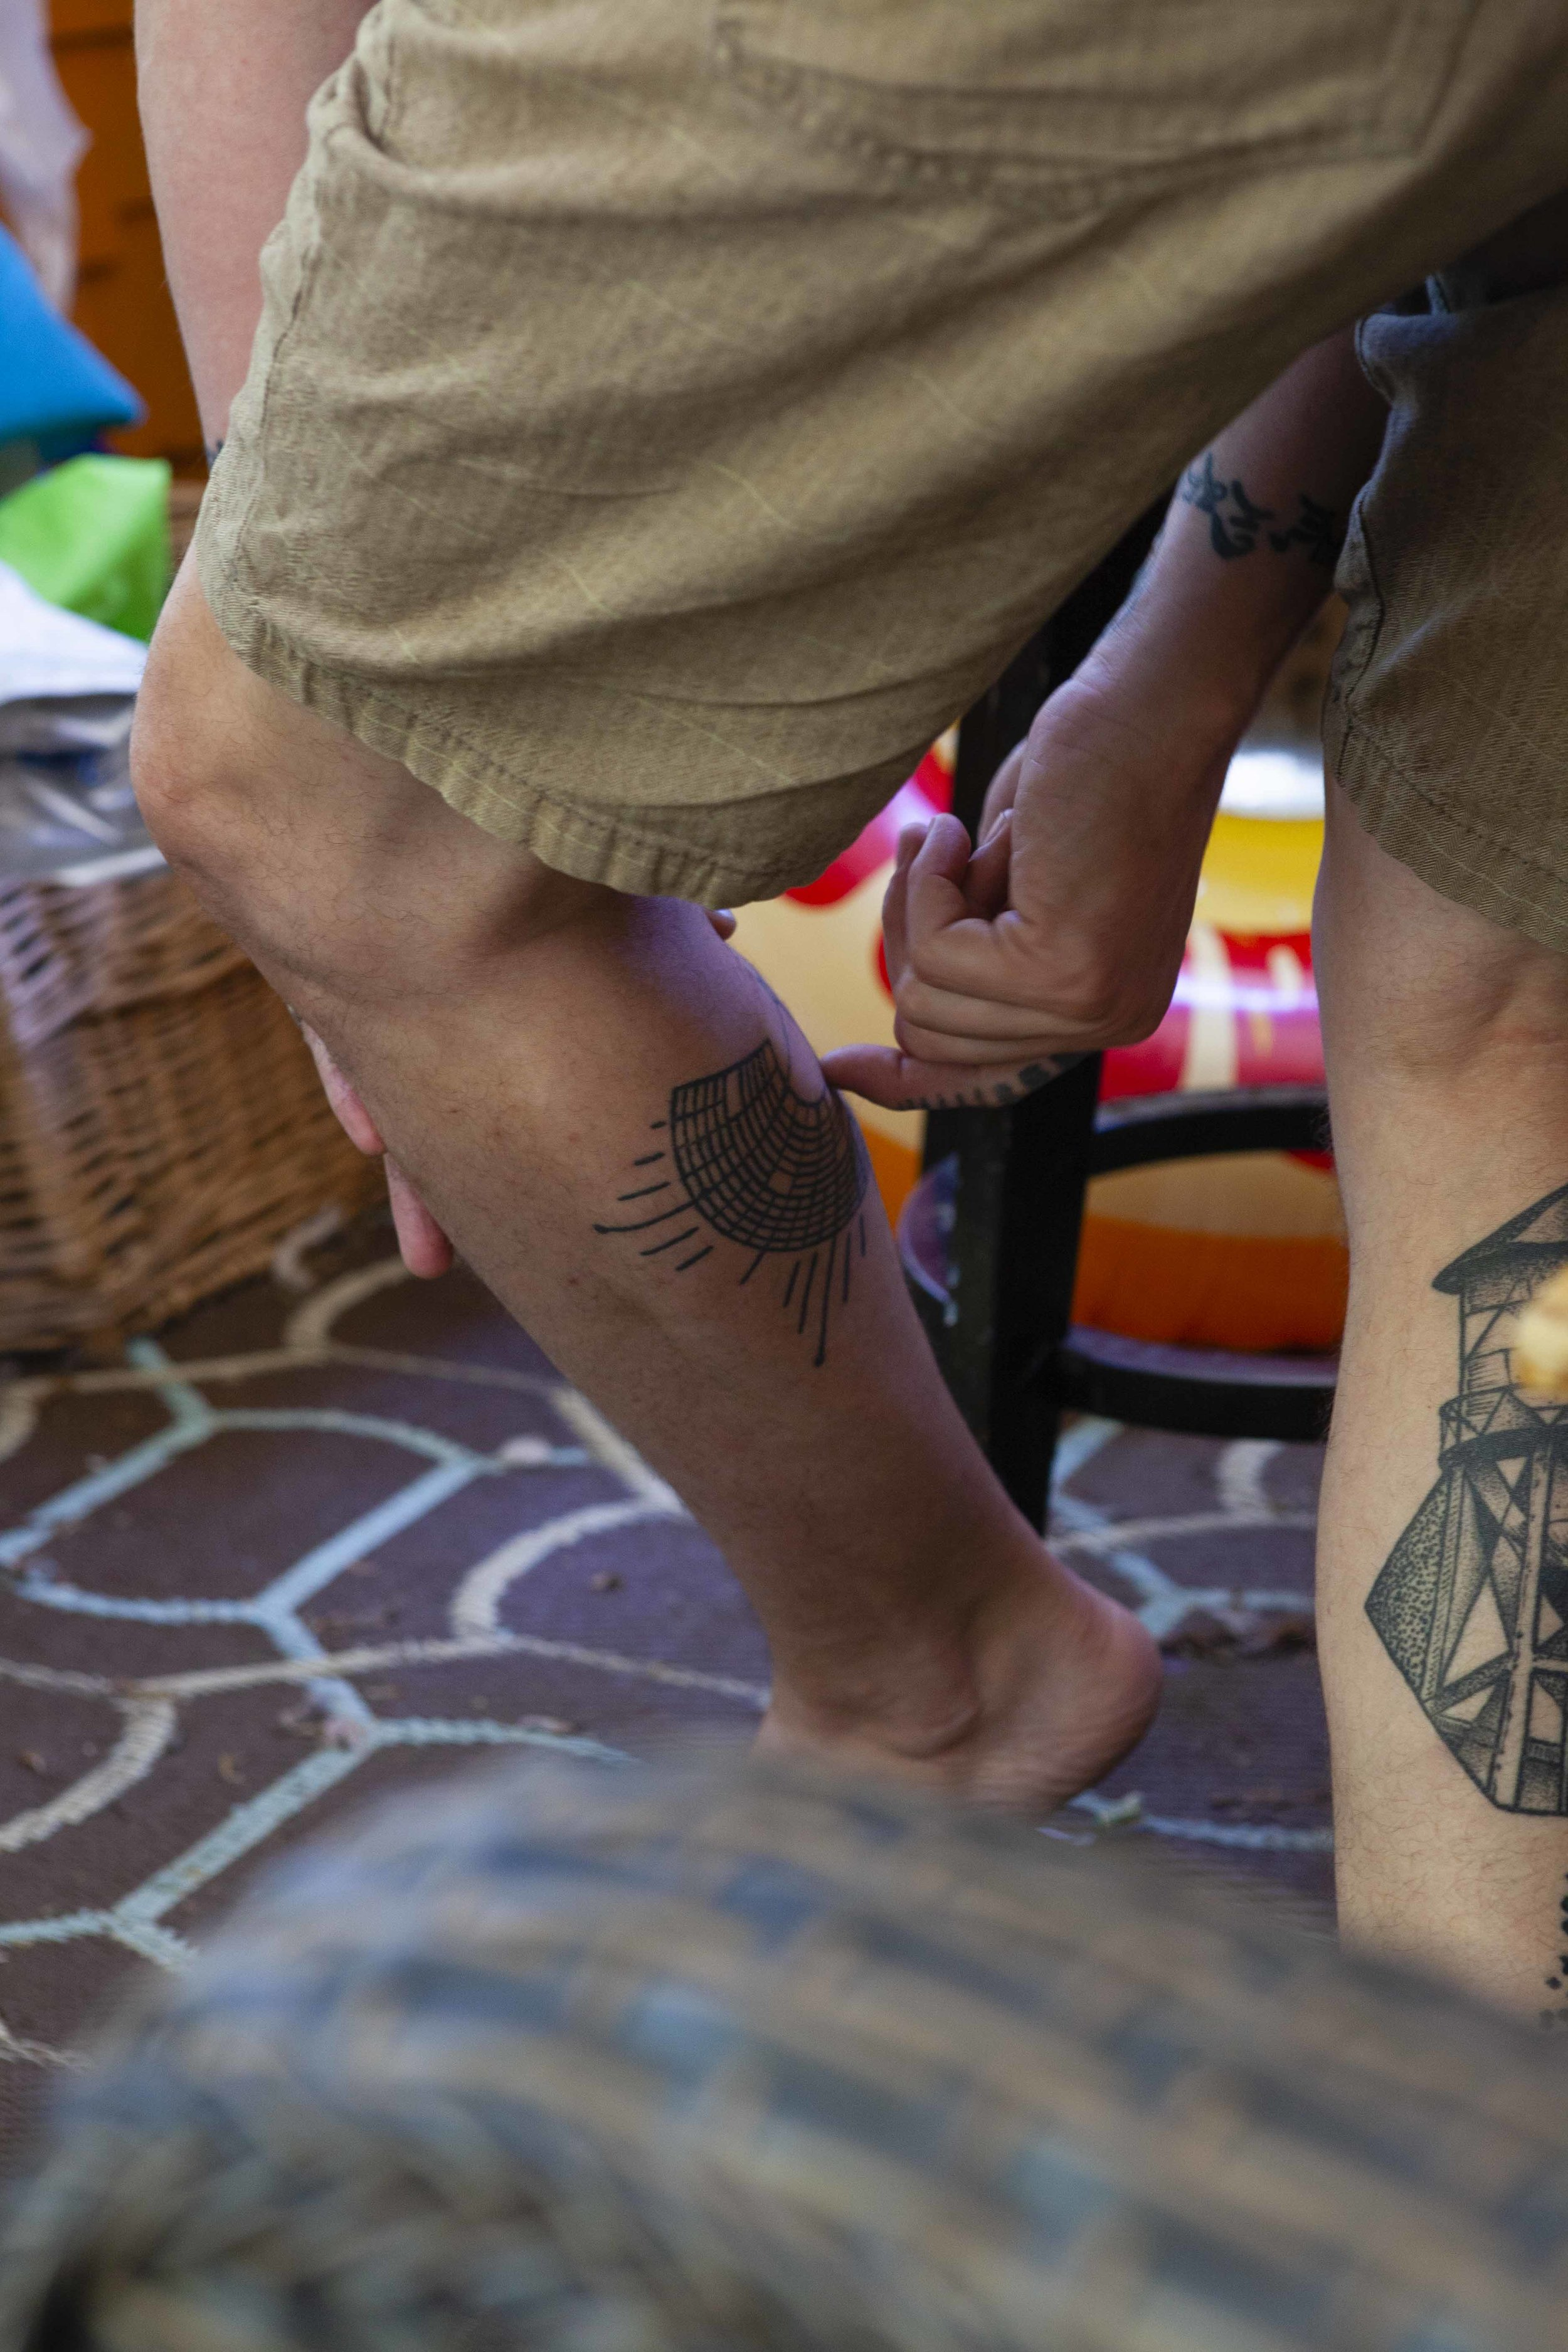 Eric points something out on the Burning Man map tattooed on his leg. He likes to point.